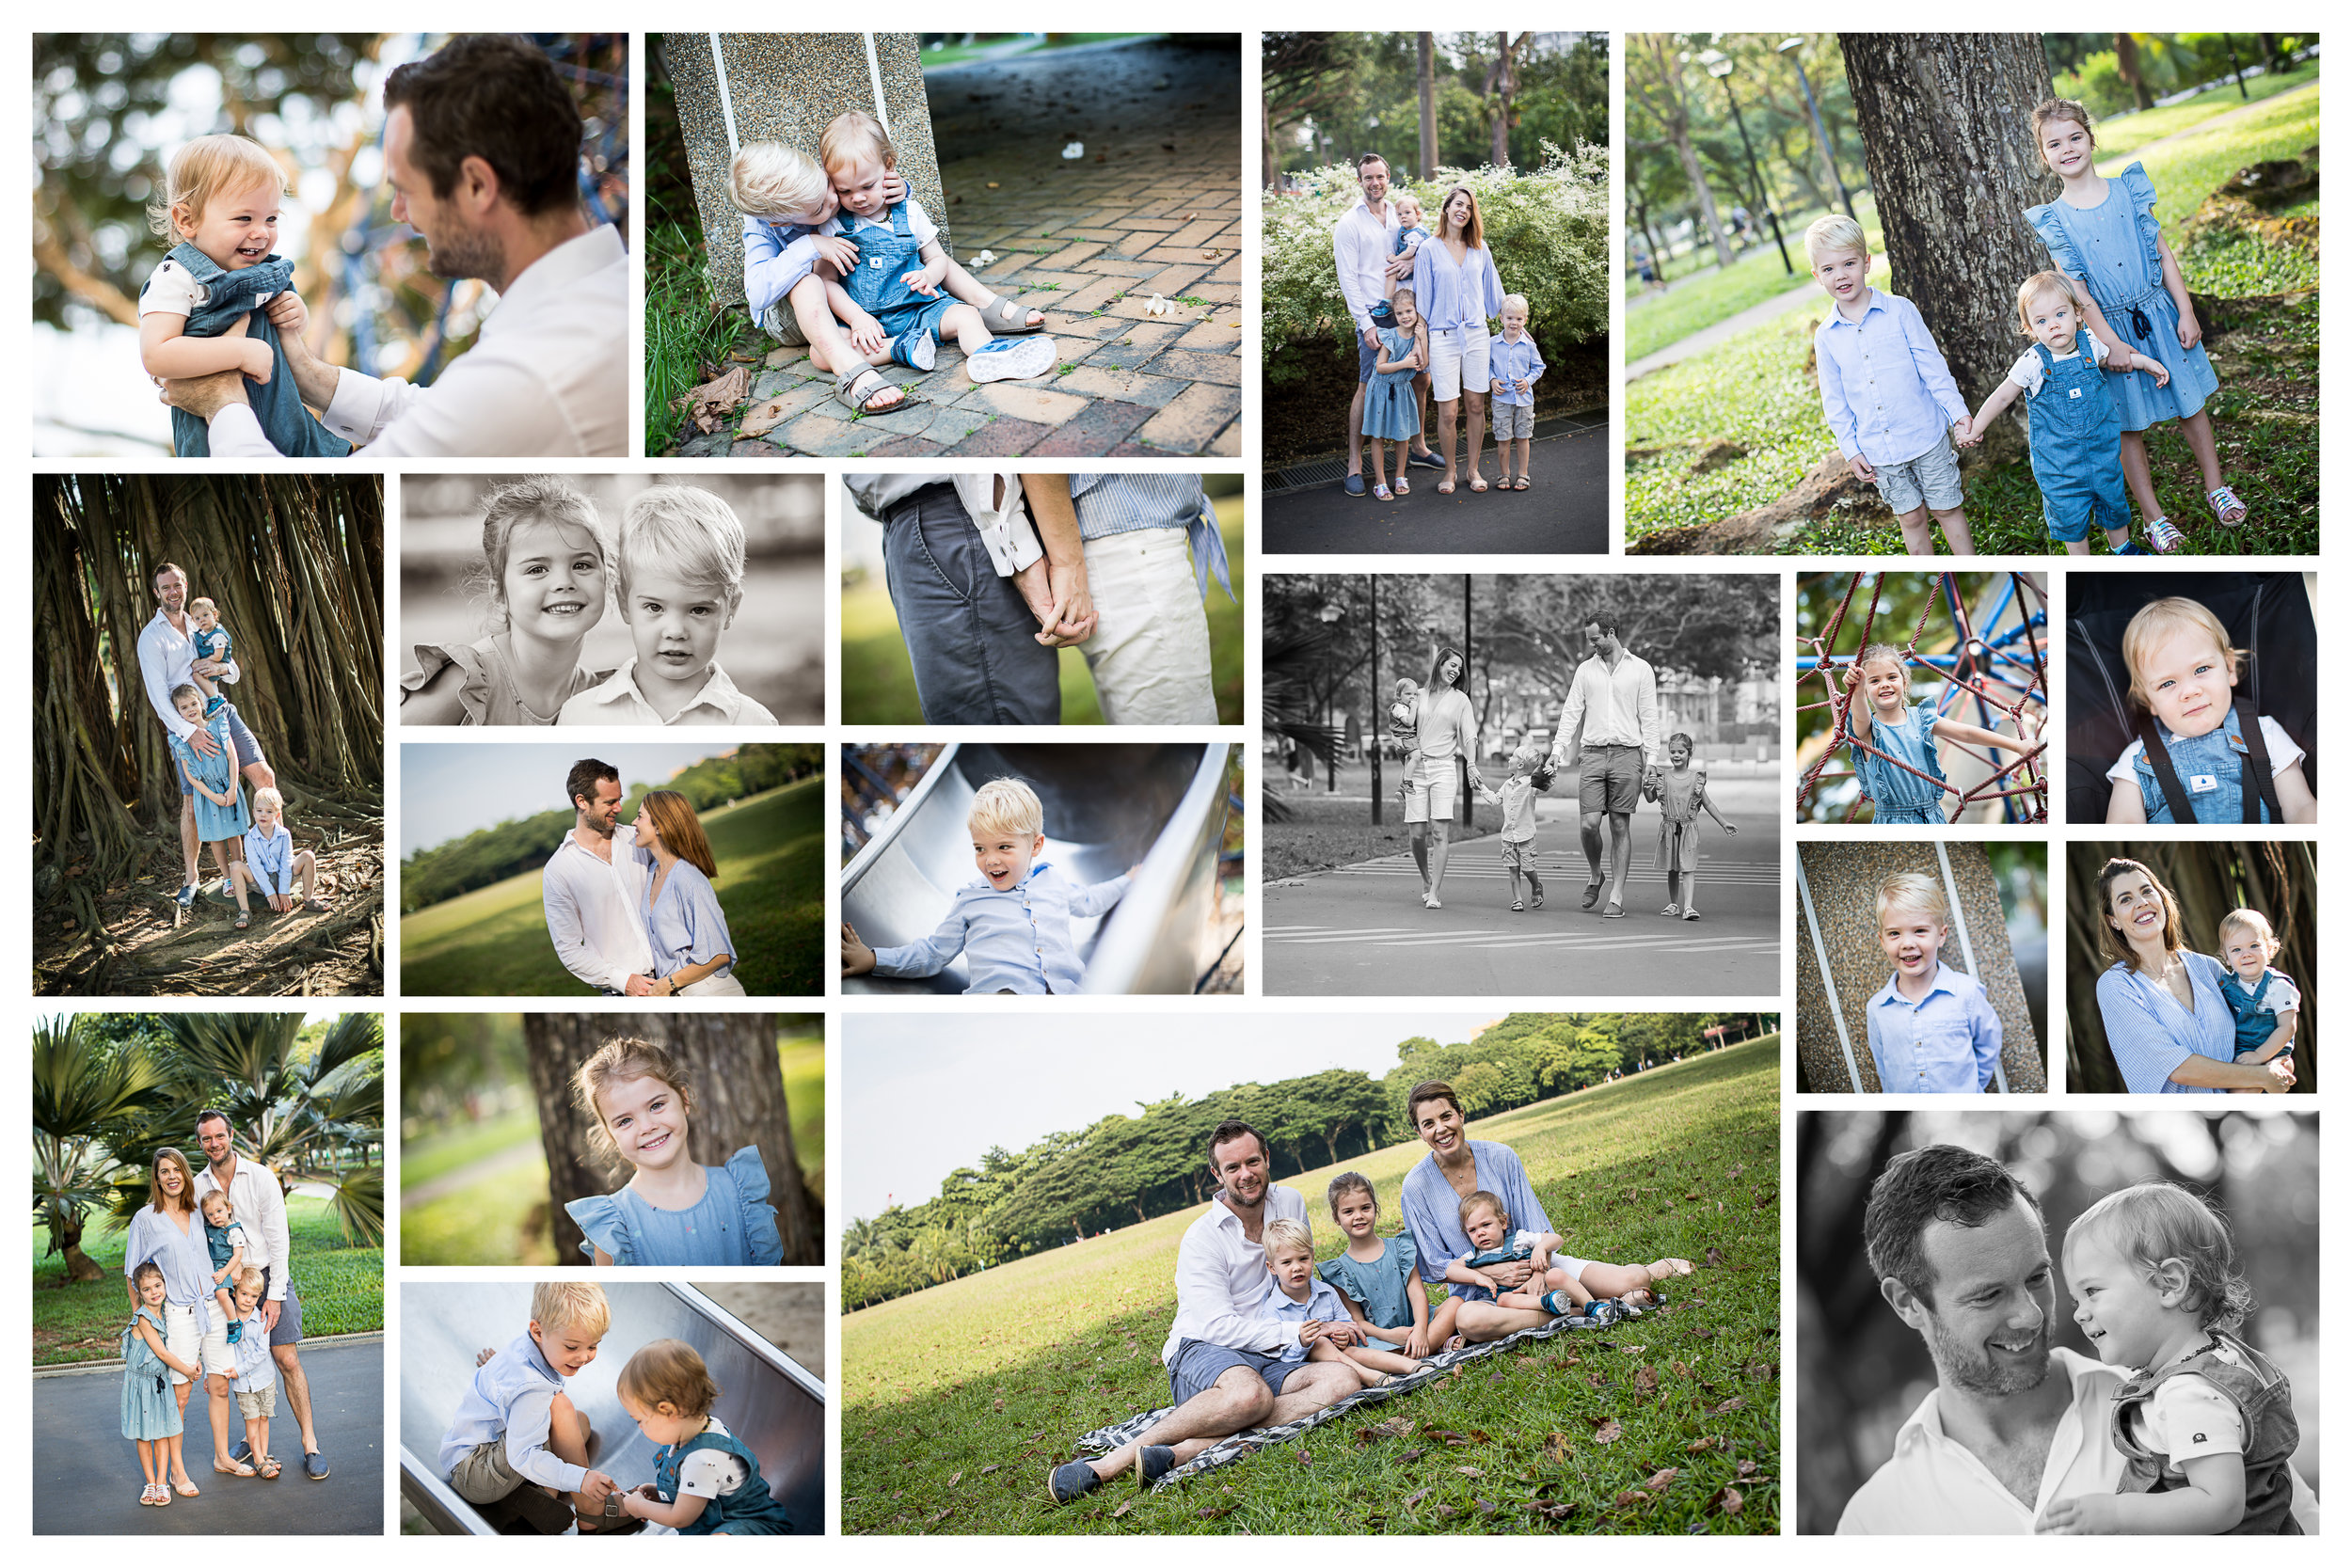 Singapore Family photographer outdoor Vision Photography Daniel Parker